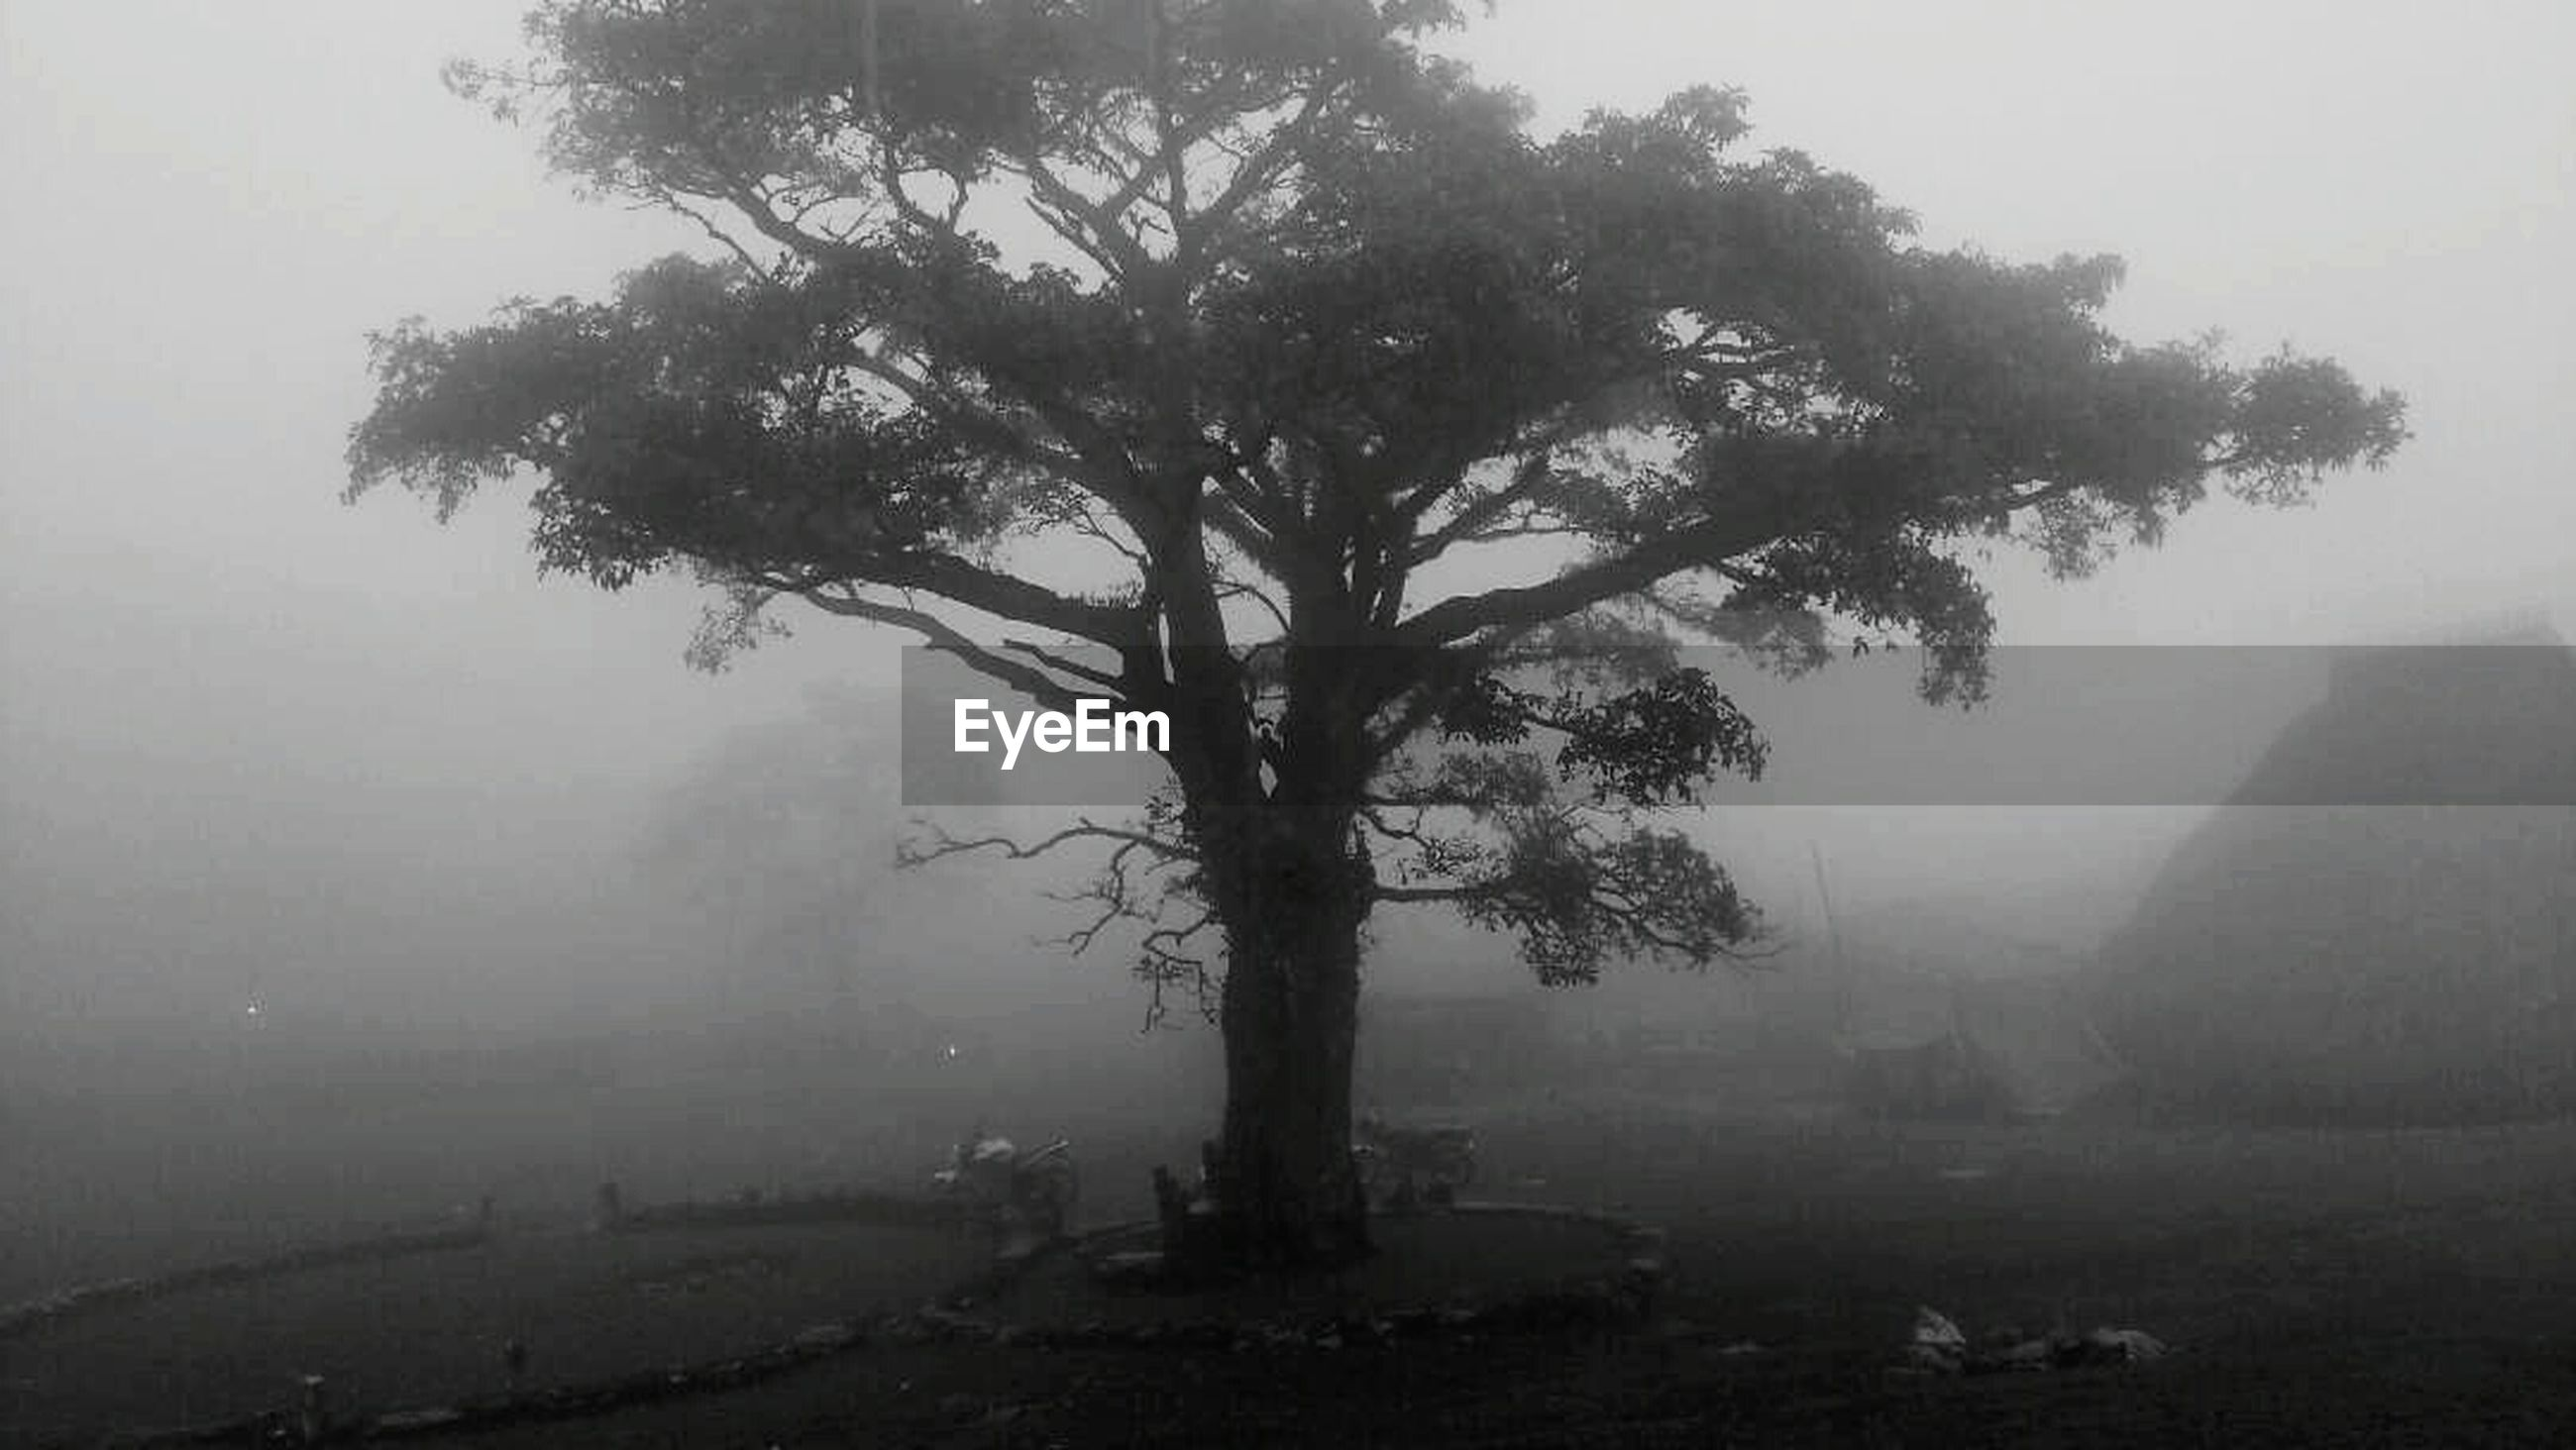 tree, fog, mist, landscape, branch, foggy, nature, weather, tranquility, tree trunk, tranquil scene, hazy, beauty in nature, scenics, no people, day, outdoors